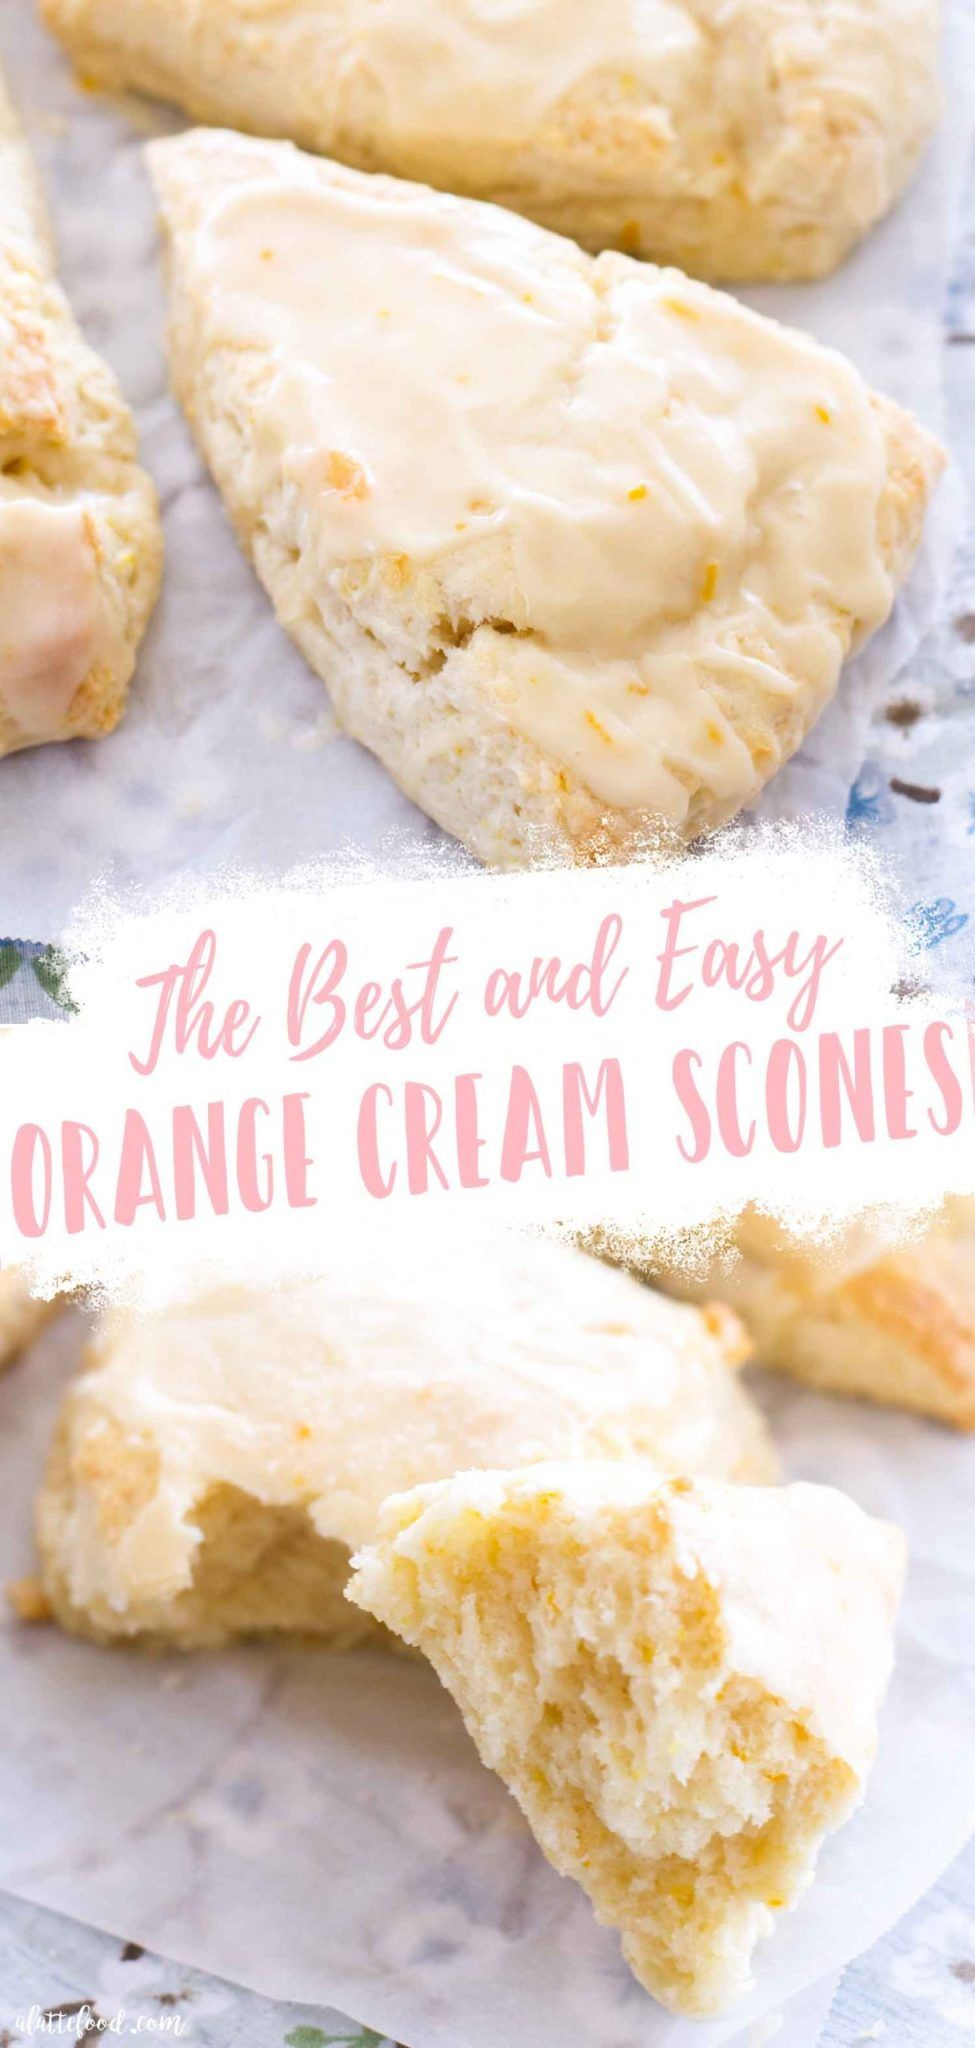 These Flaky Orange Cream Scones With A Homemade Orange Glaze Are So Easy To Make At Home Made From In 2020 Scones Recipe Easy Heavy Cream Recipes Orange Scones Recipe